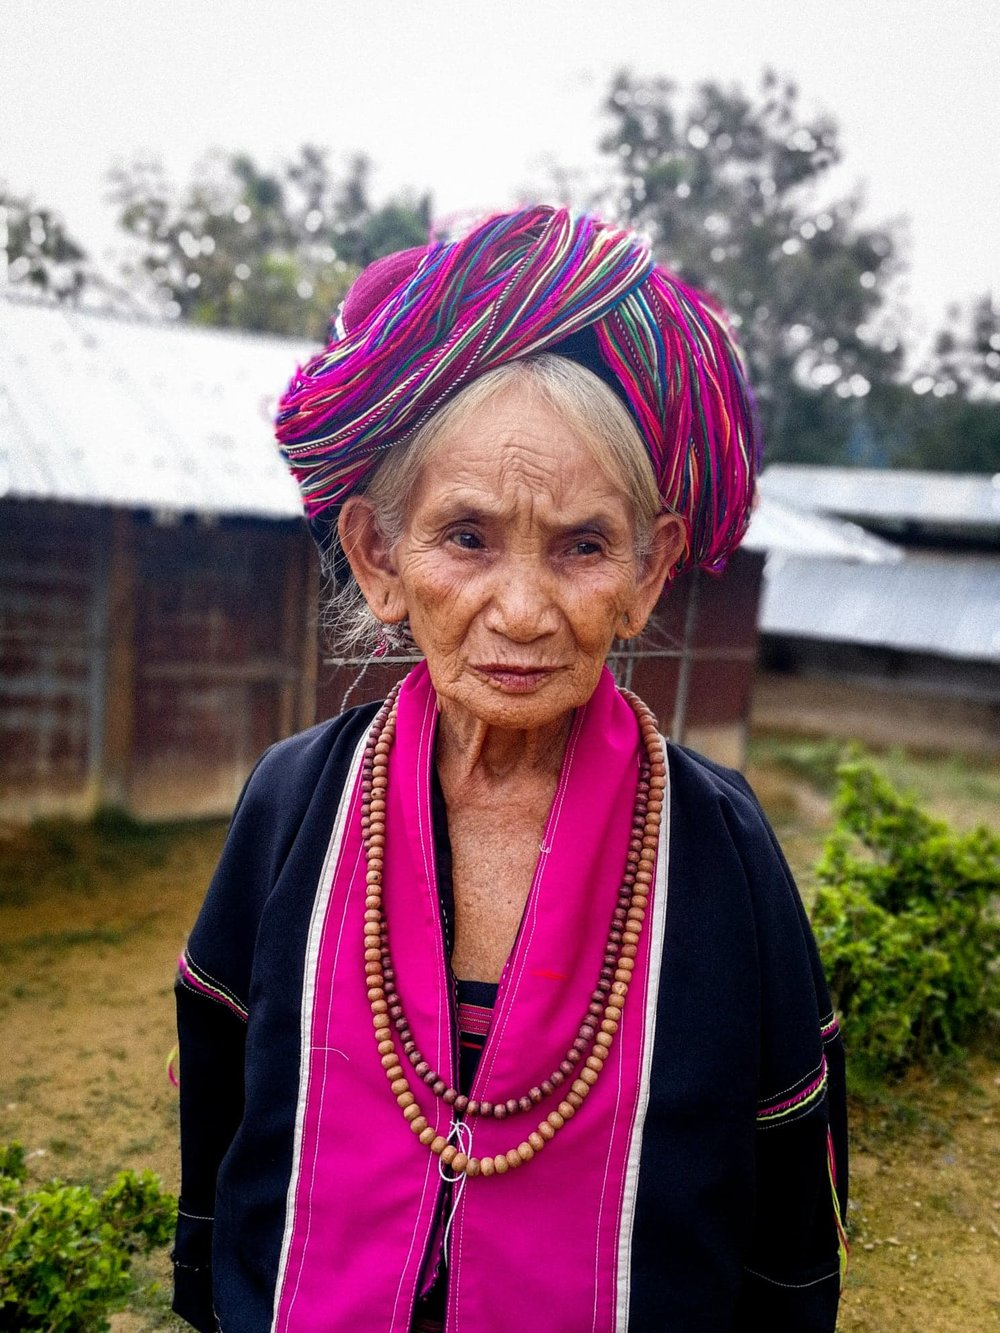 Travel photography by Rose Cornwell. Myanmar Photo: The Palaung or Ta'ang are a Mon–Khmer ethnic minority found in Shan State of Burma, Yunnan Province of China and Northern Thailand.